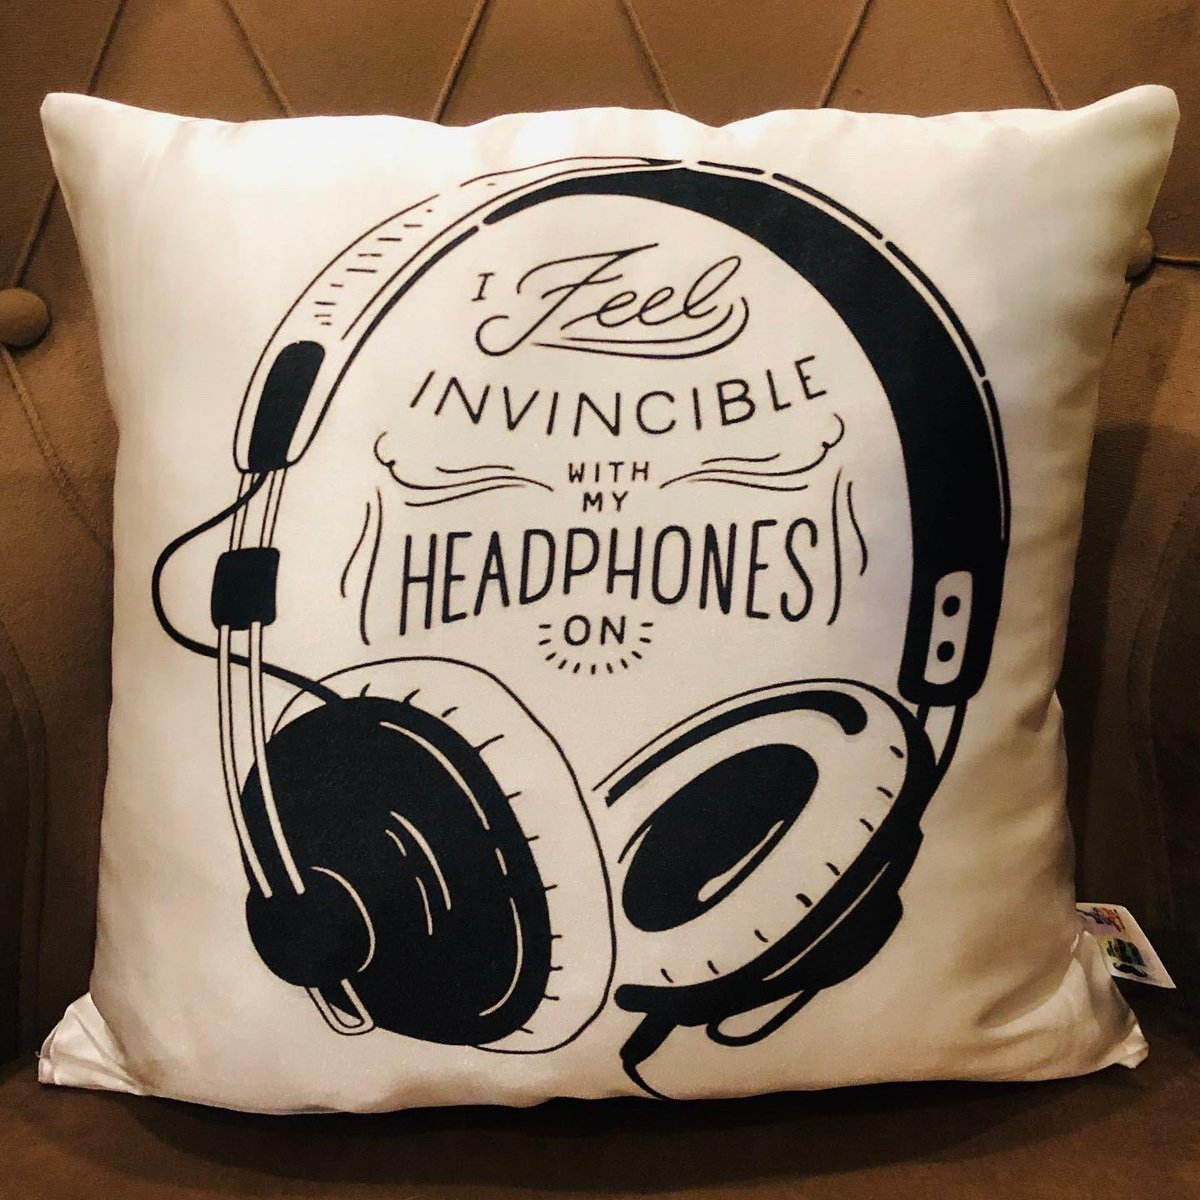 #I #feel #invincible #with #my #headphones #on # hobby #art  #special #pillow #😉